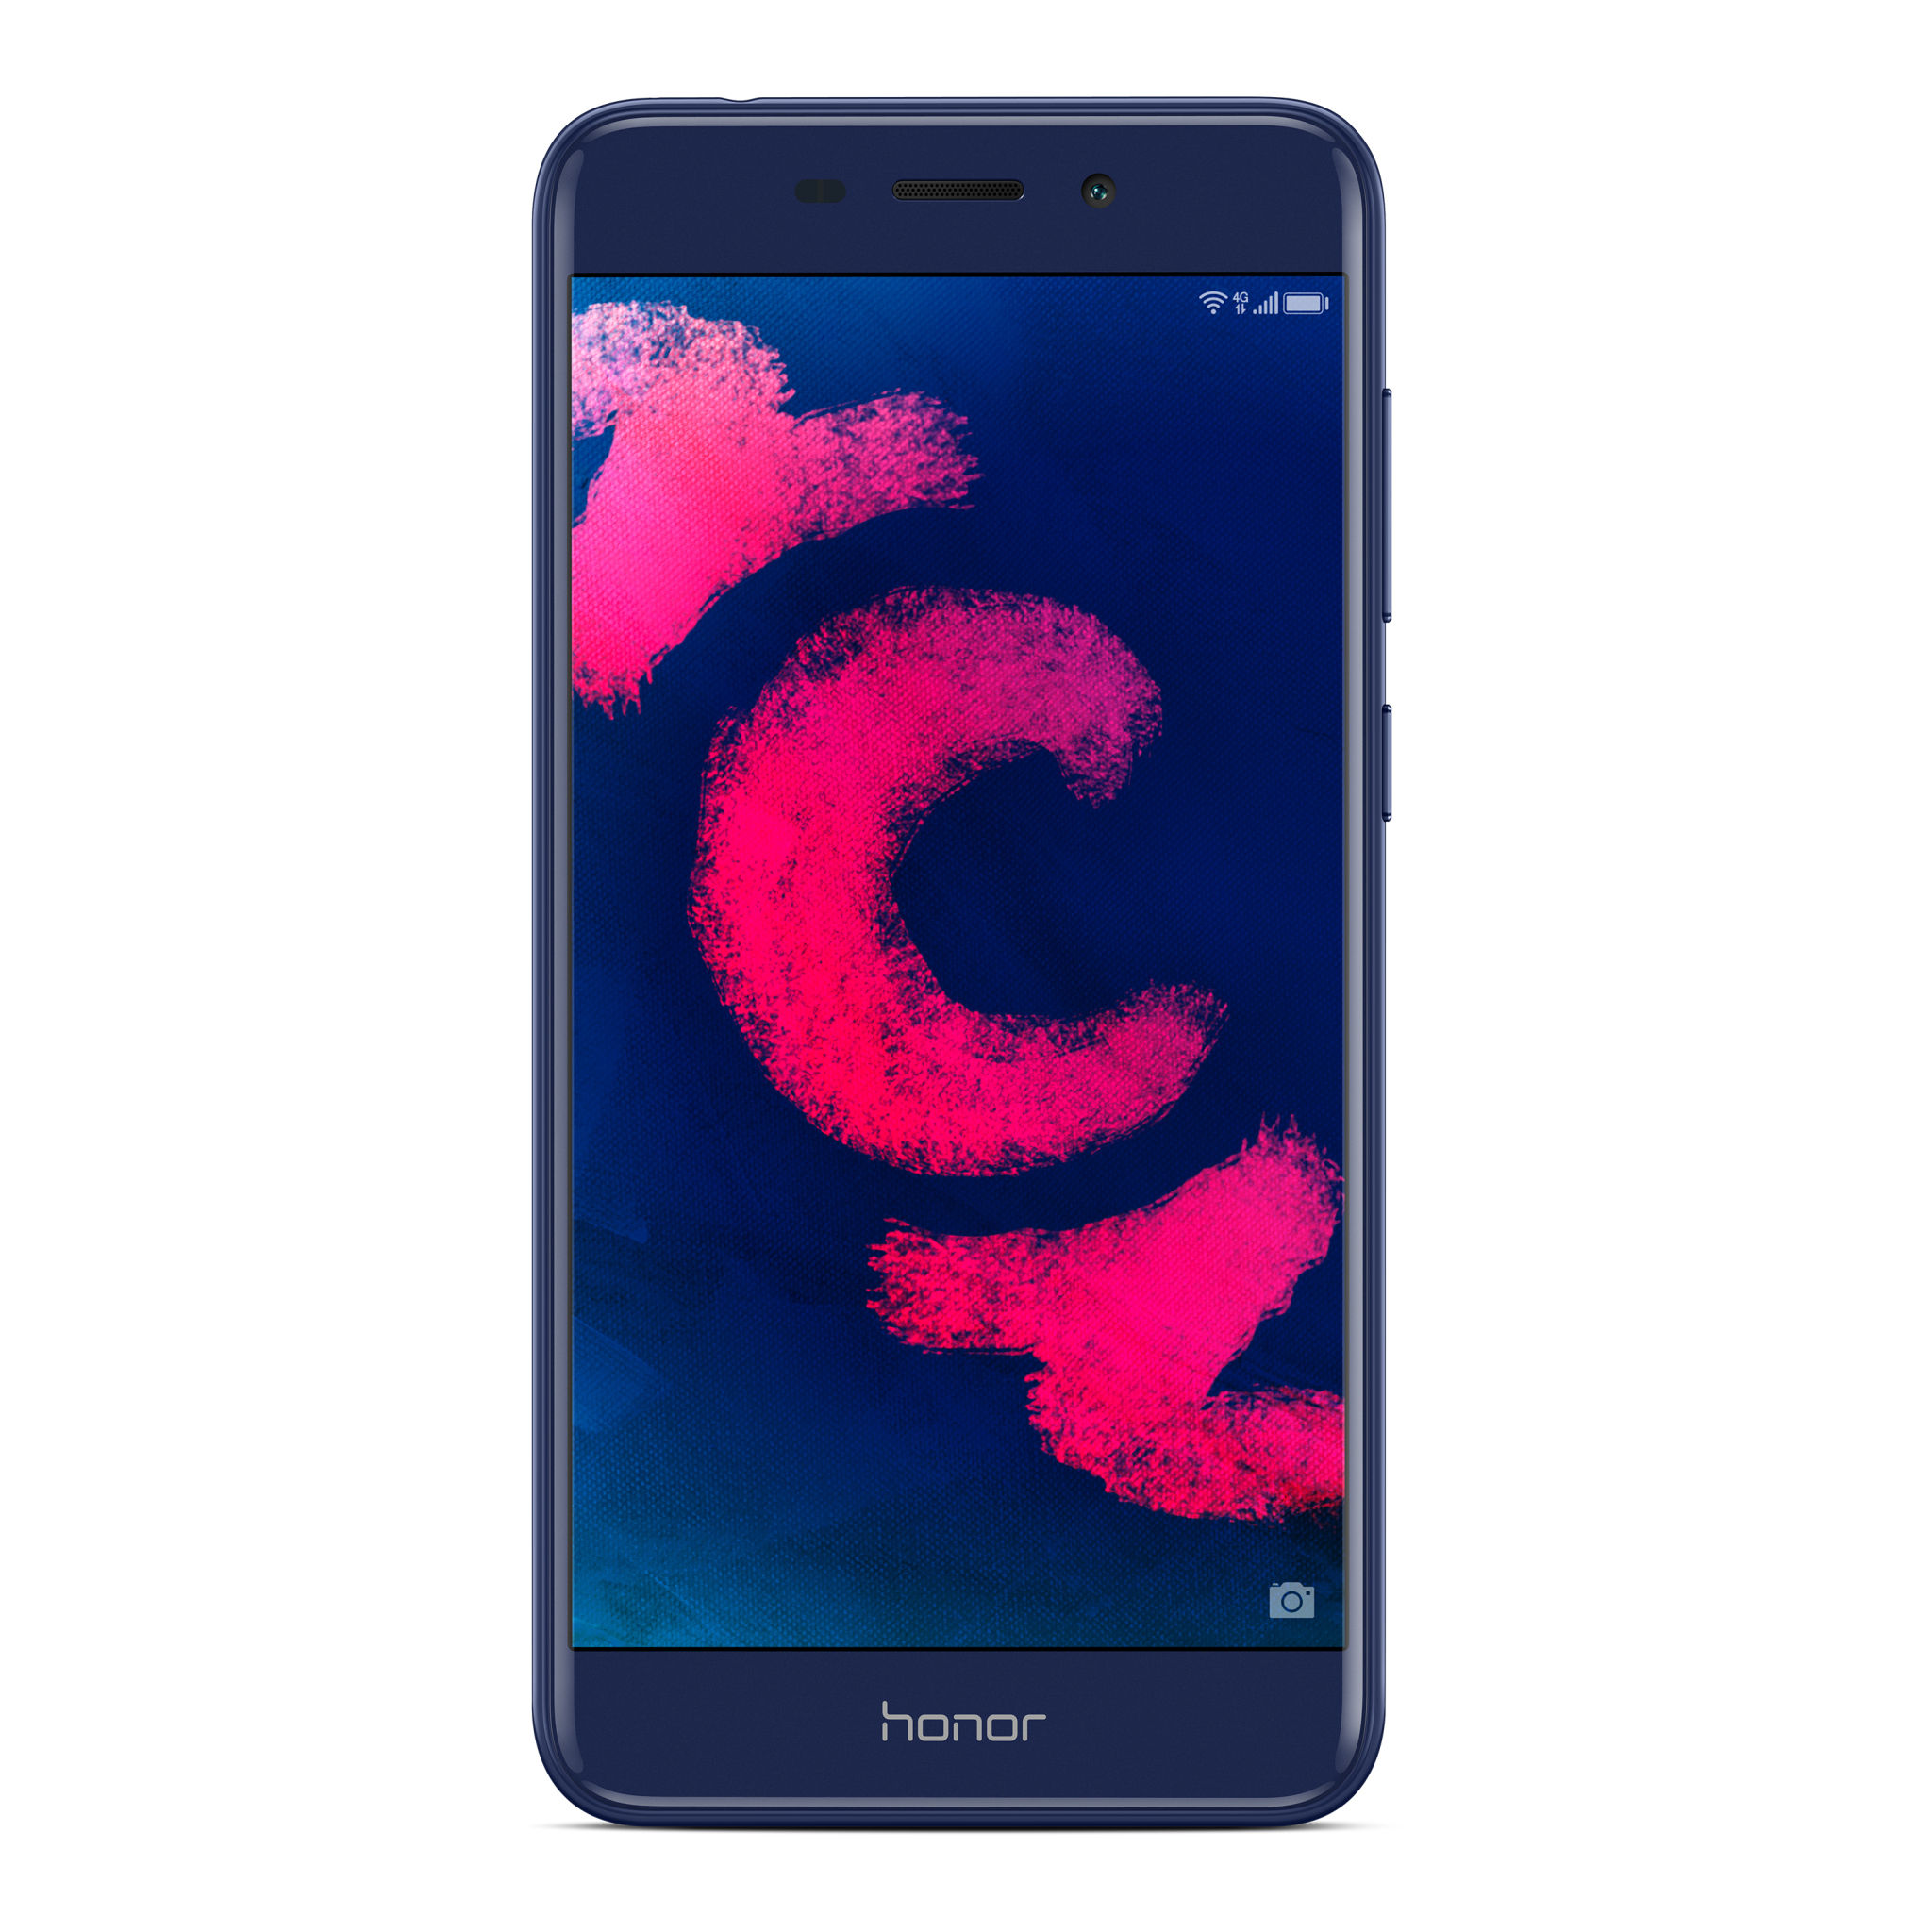 Honor 6C Pro arriva in Italia a 179,90 euro